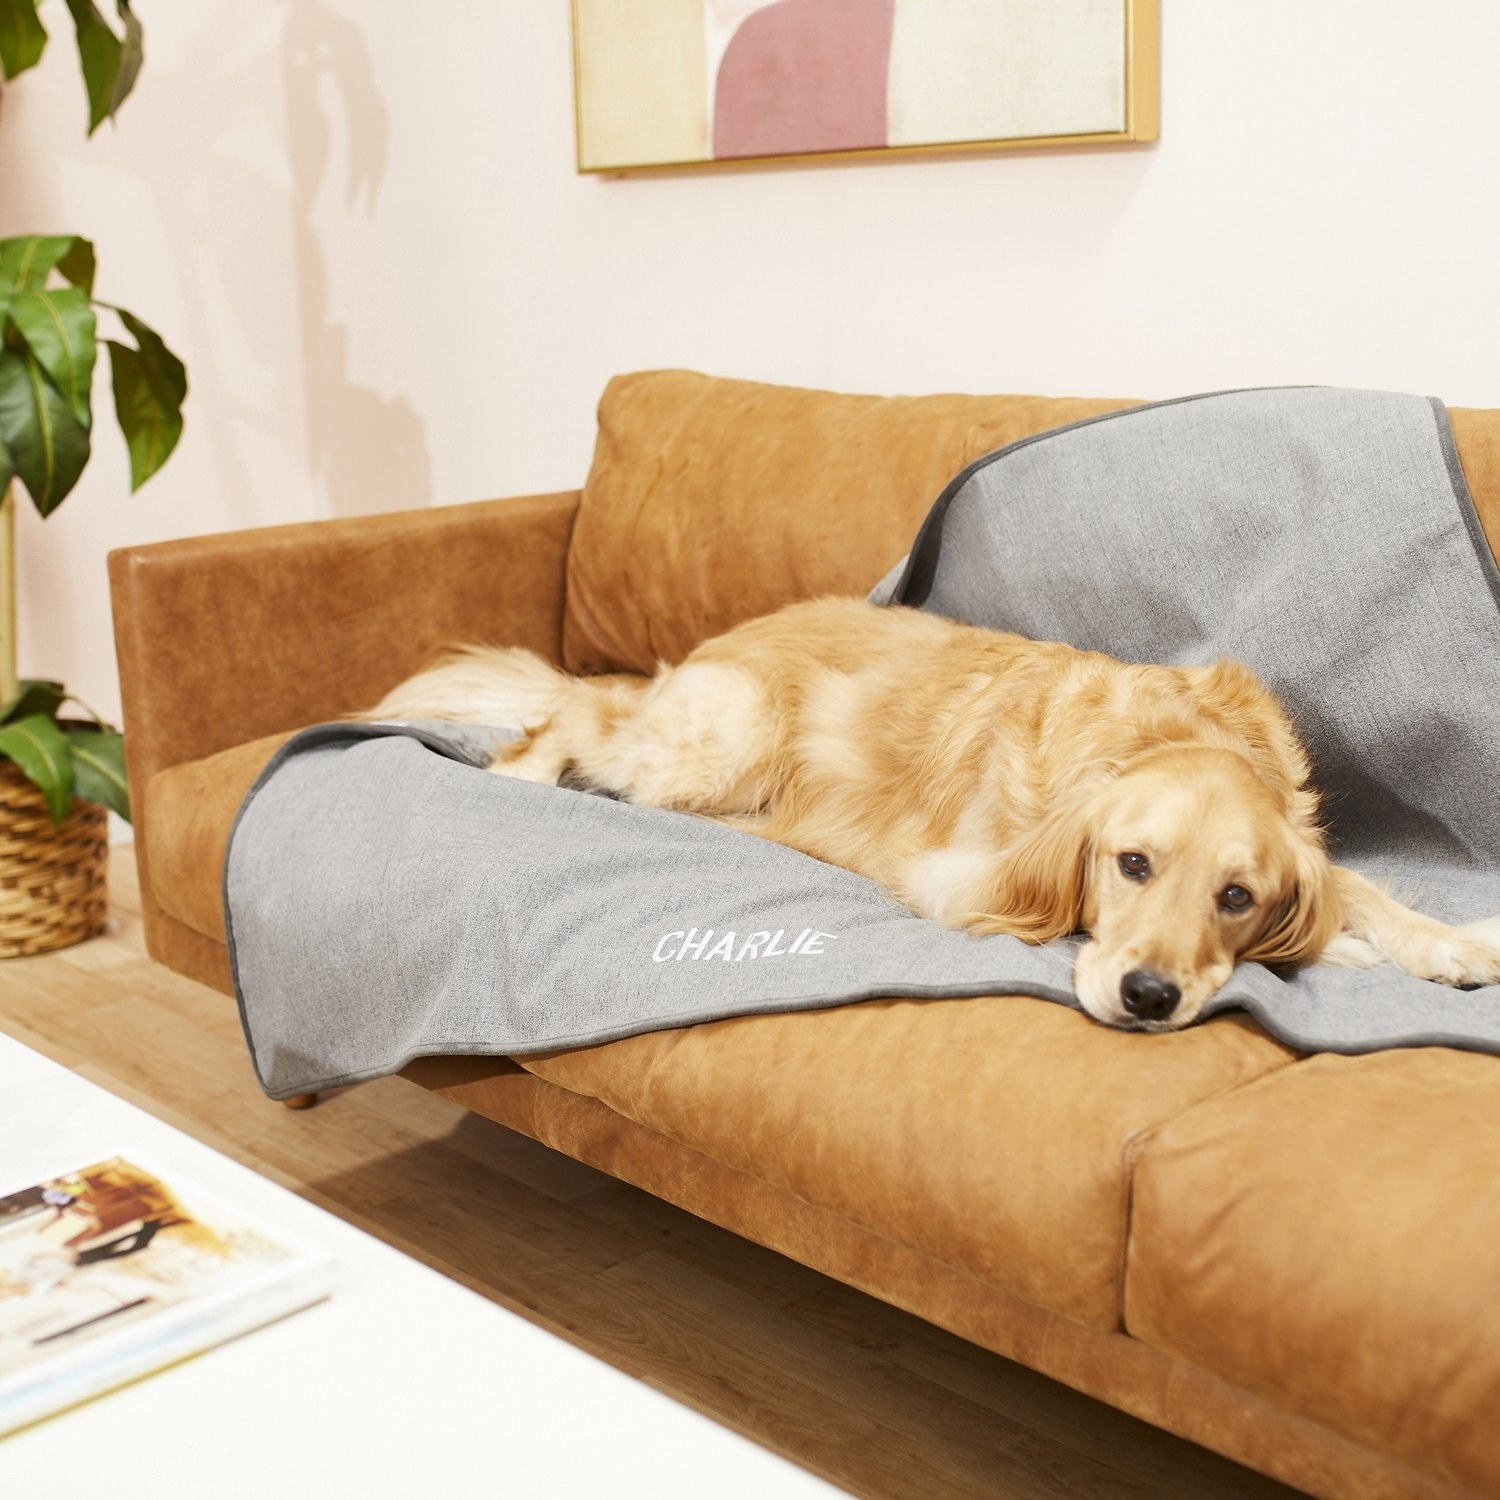 """Golden Retriever lounging on gray blanket that says """"Charlie"""" on the front"""